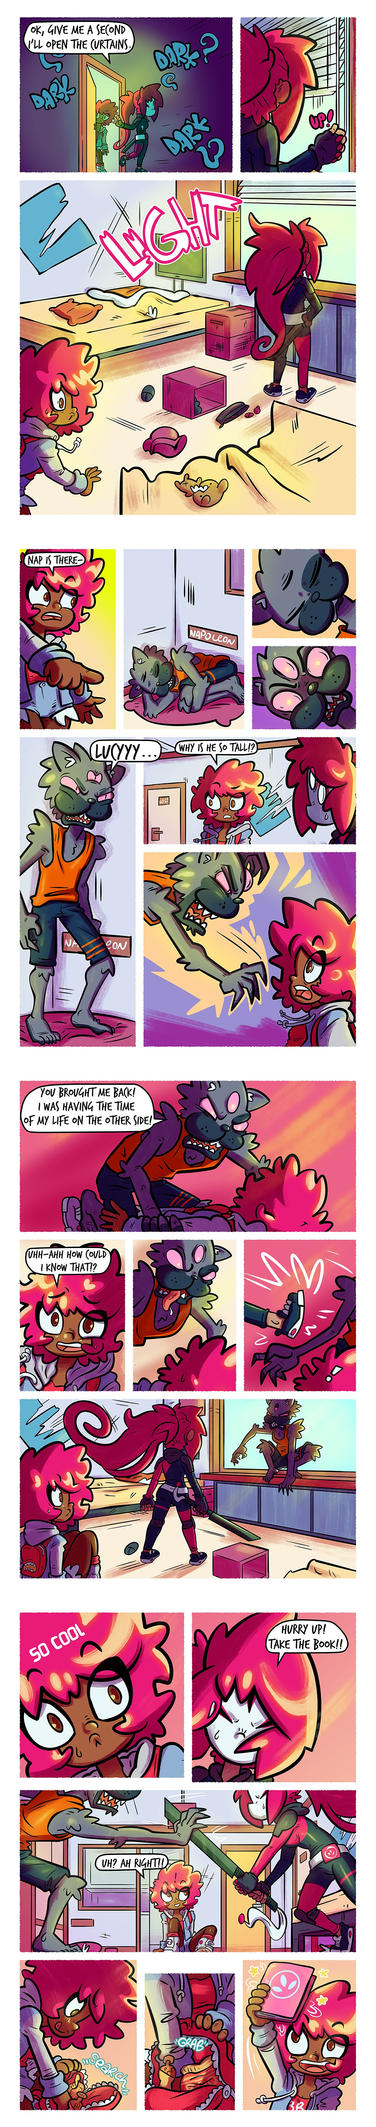 UIA Chapter 2 Page 12-15 by glitchyberry